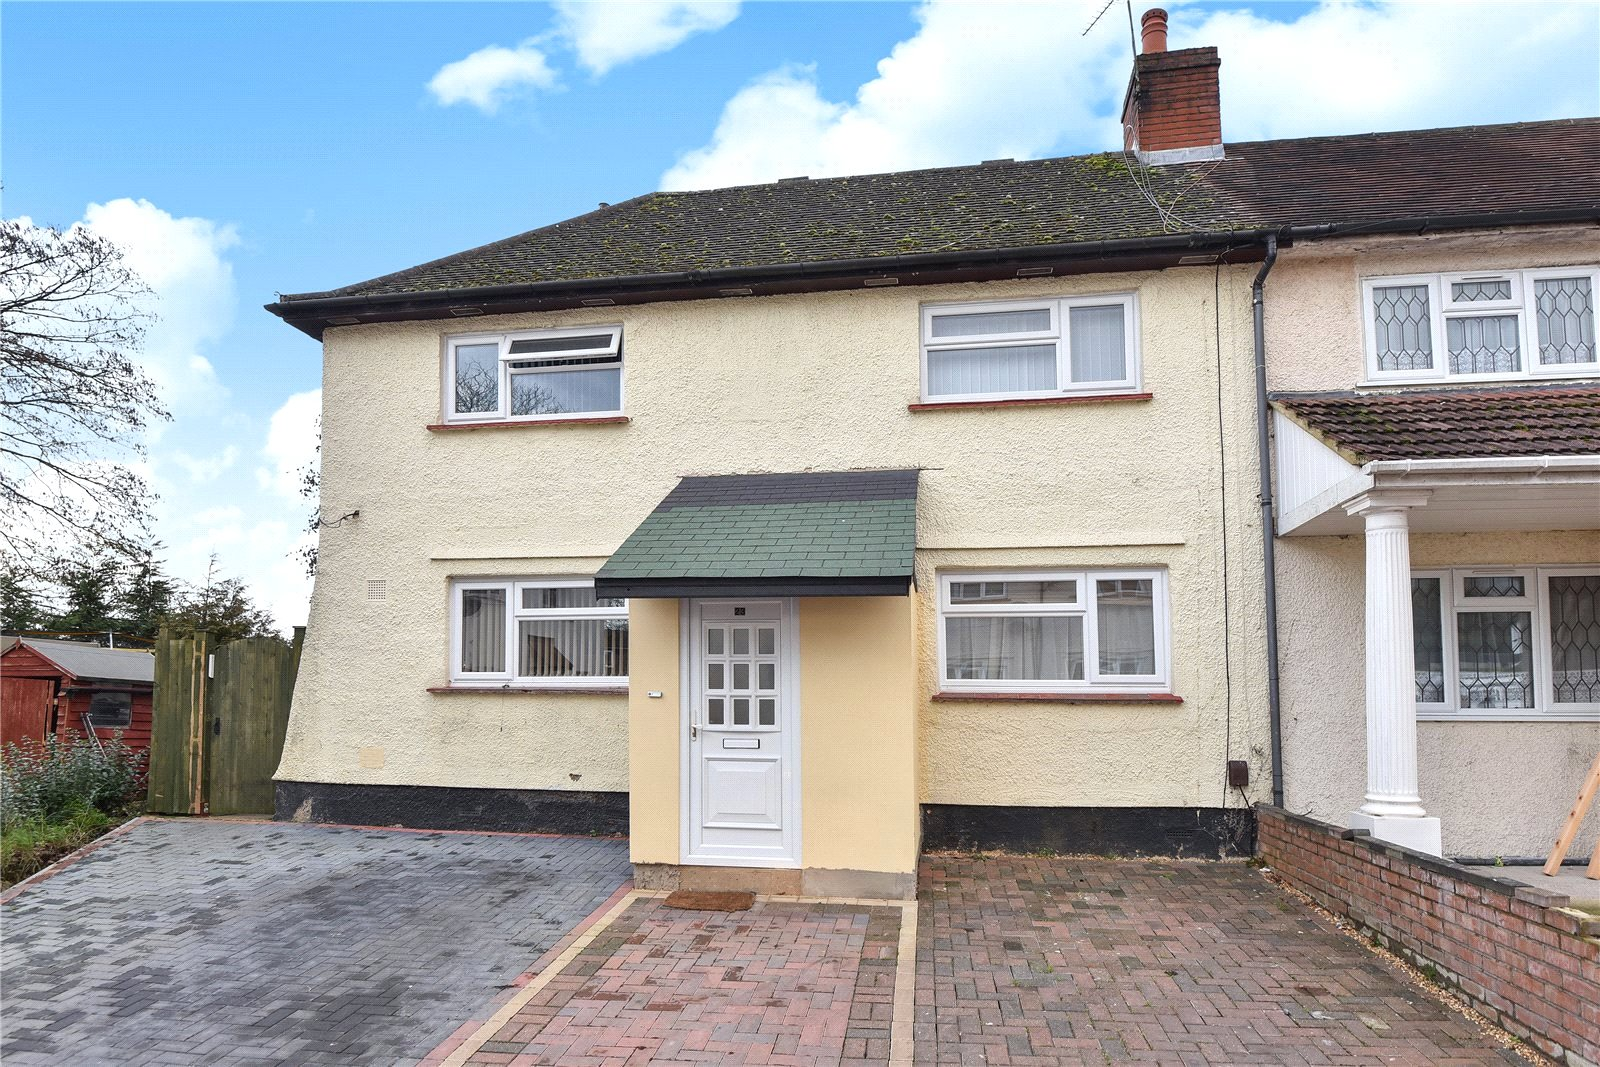 3 Bedrooms Semi Detached House for sale in Desborough Crescent, Maidenhead, Berkshire, SL6